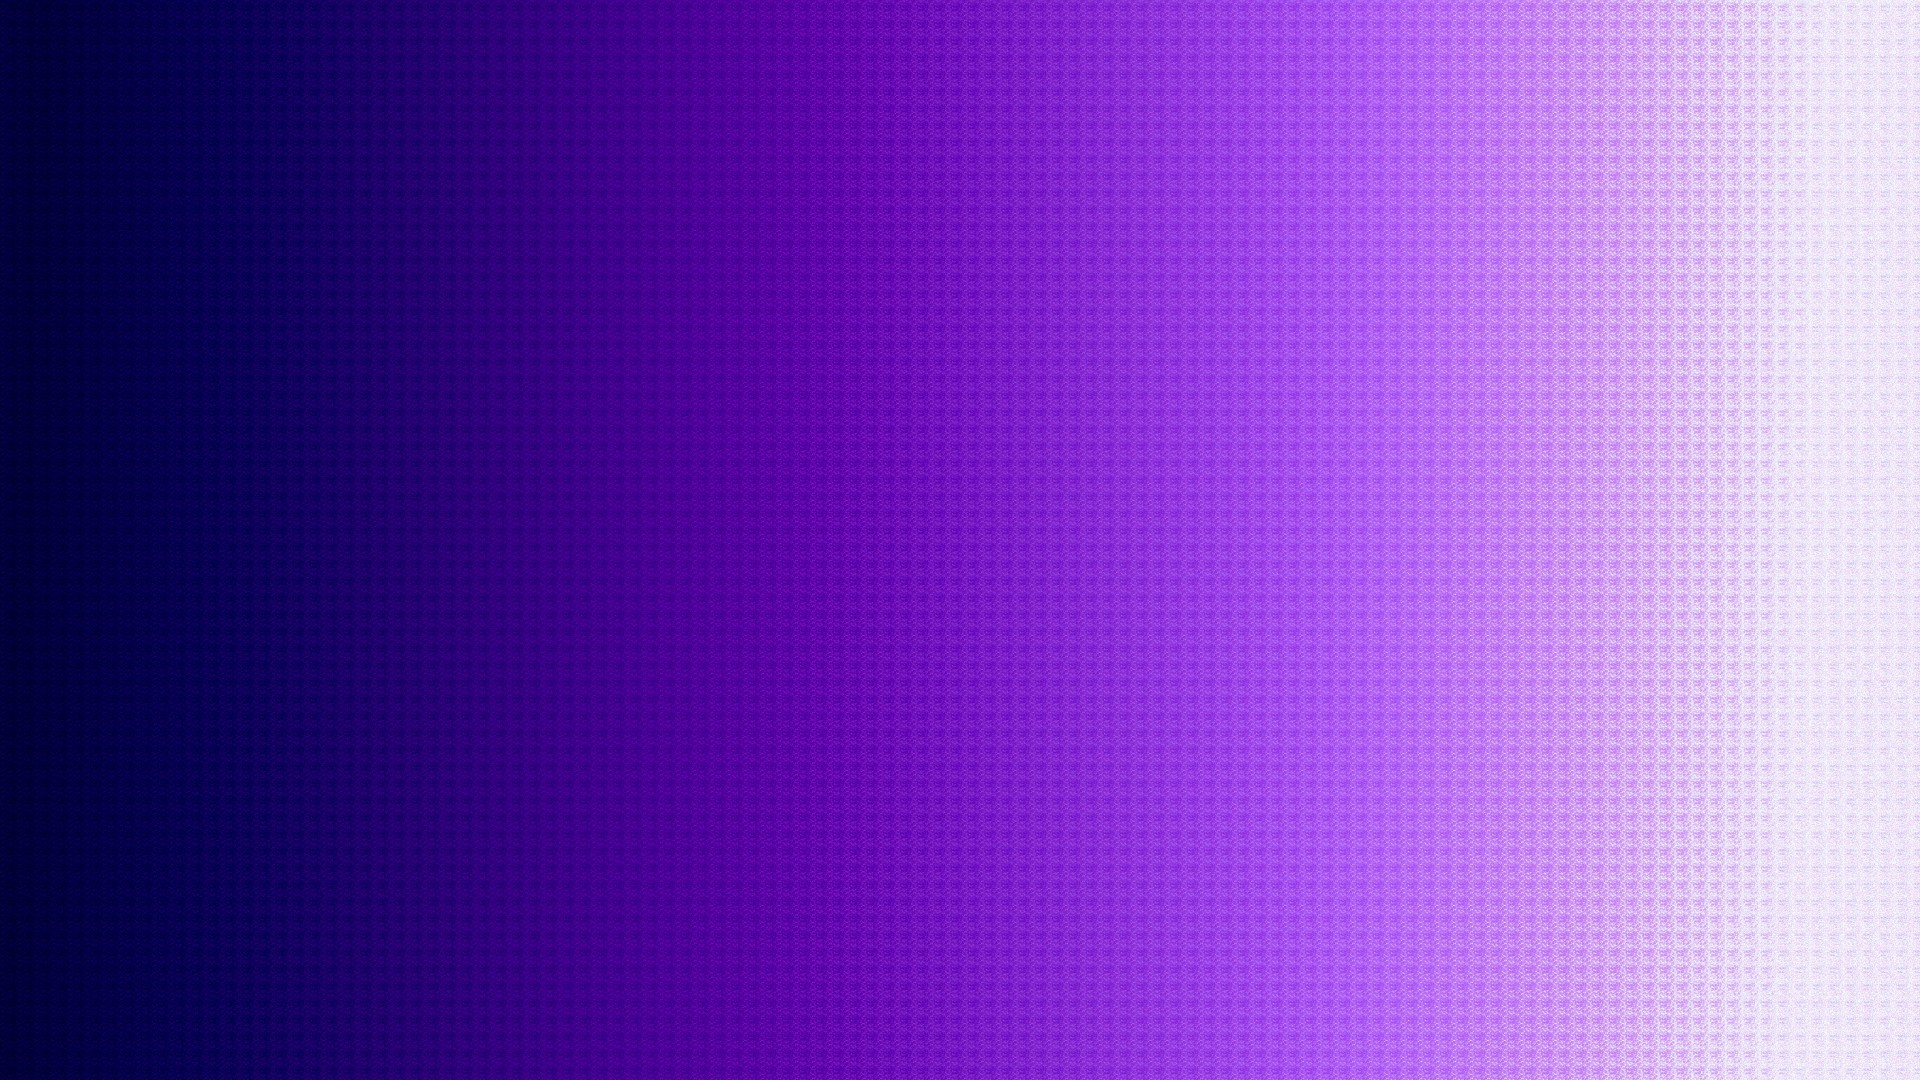 Gradient laptop background